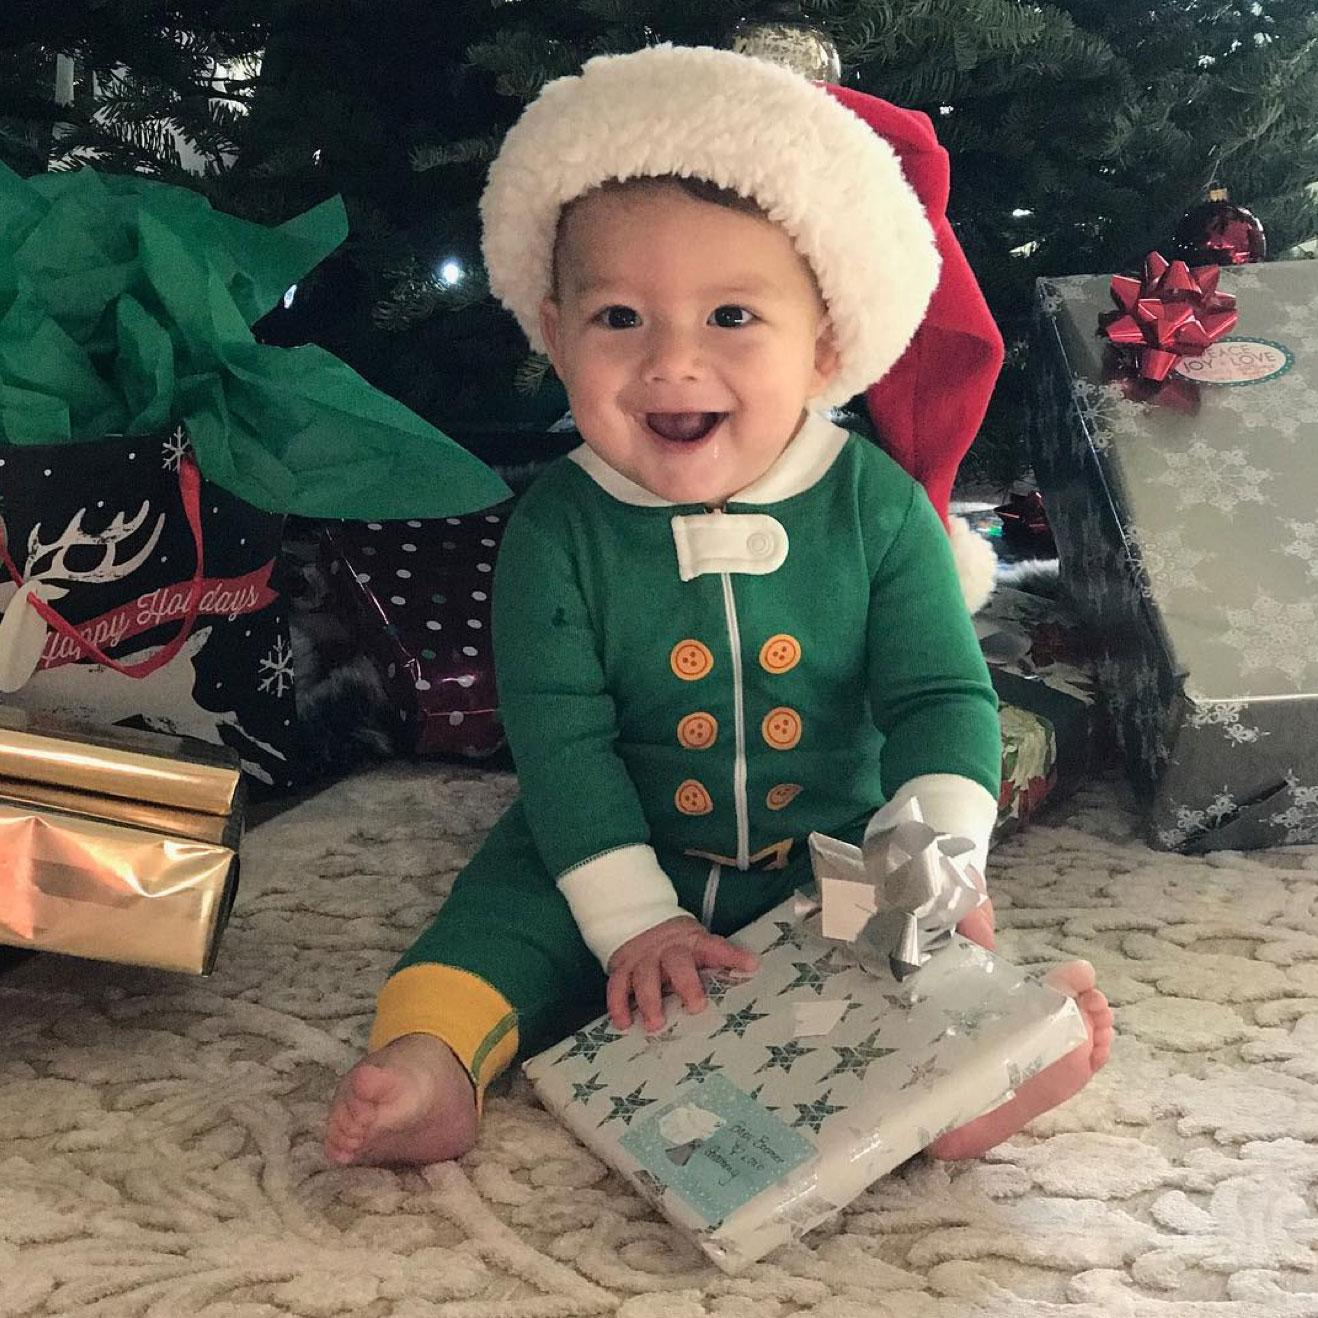 Michael Phelps' Son Boomer Celebrates His First Christmas ...